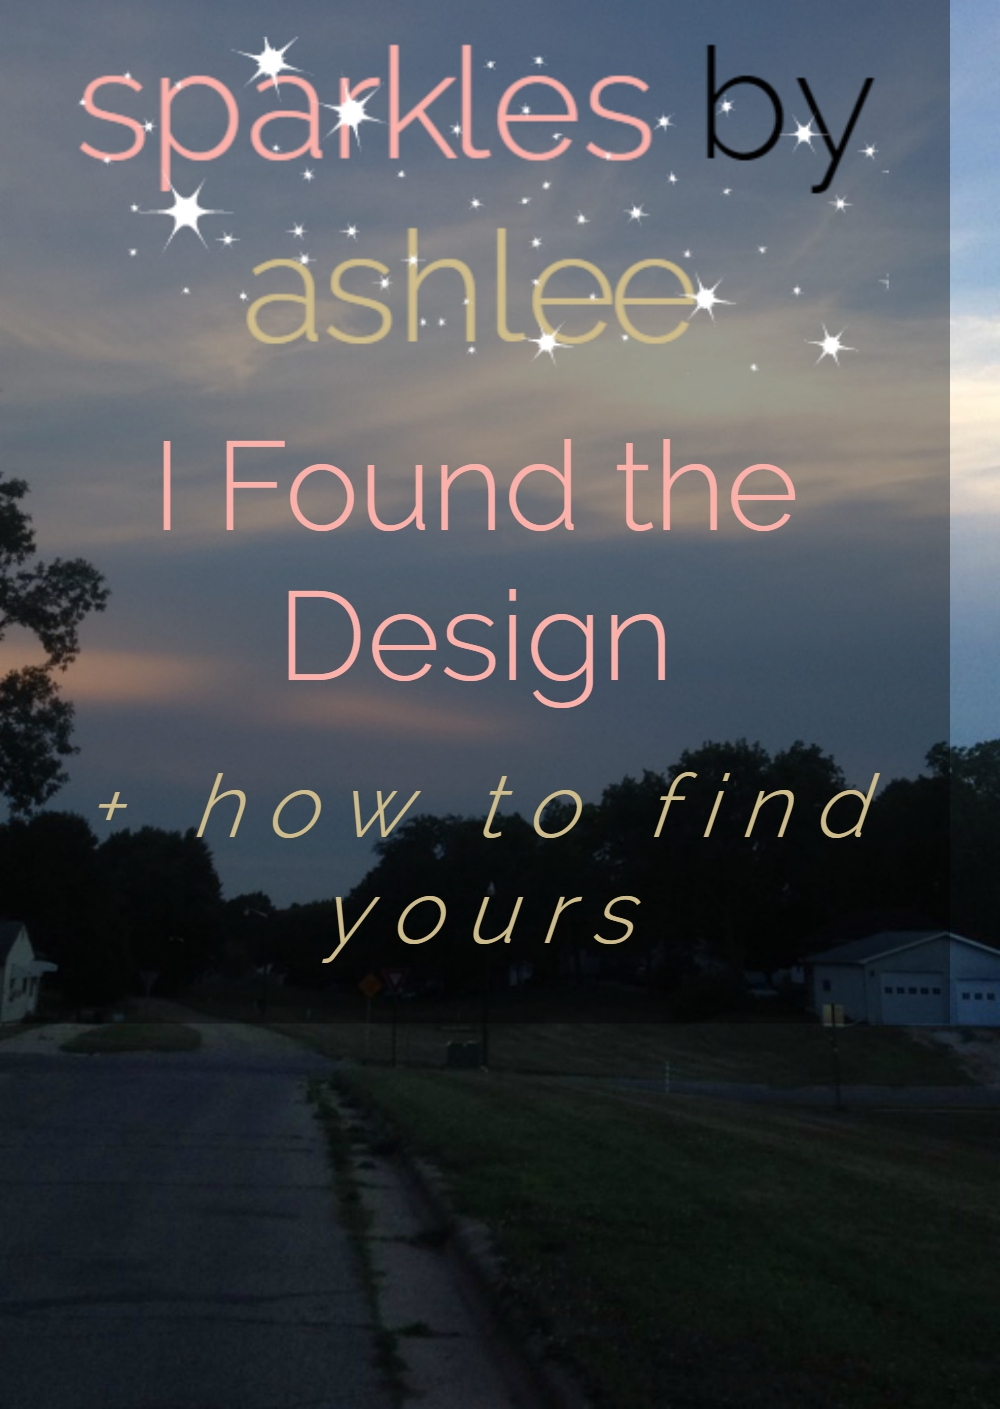 I-Found-the-Design-Plus-How-to-Find-Yours-Sparkles-by-Ashlee.jpg